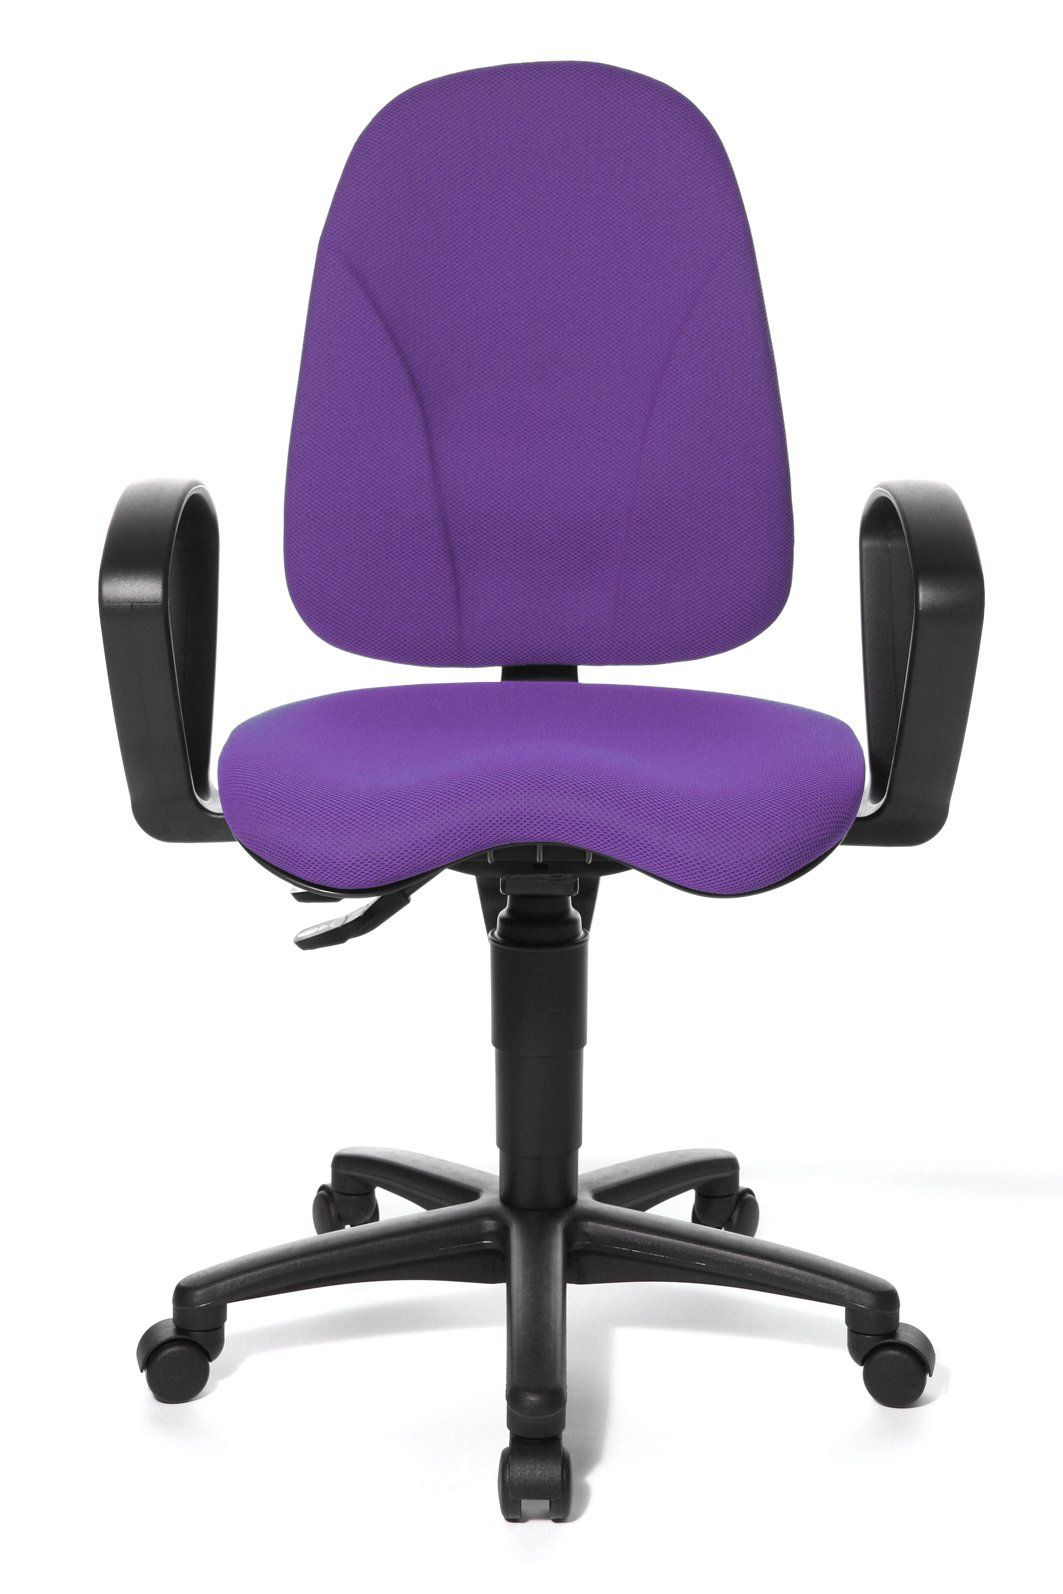 Purple Swivel Chair Safety First Folding Table And Chairs Topstar Point 40 Comfort Office With Orthopedically Shaped Seat A Real Bargain At 53 18 Per Normally Mid Range Task Operator